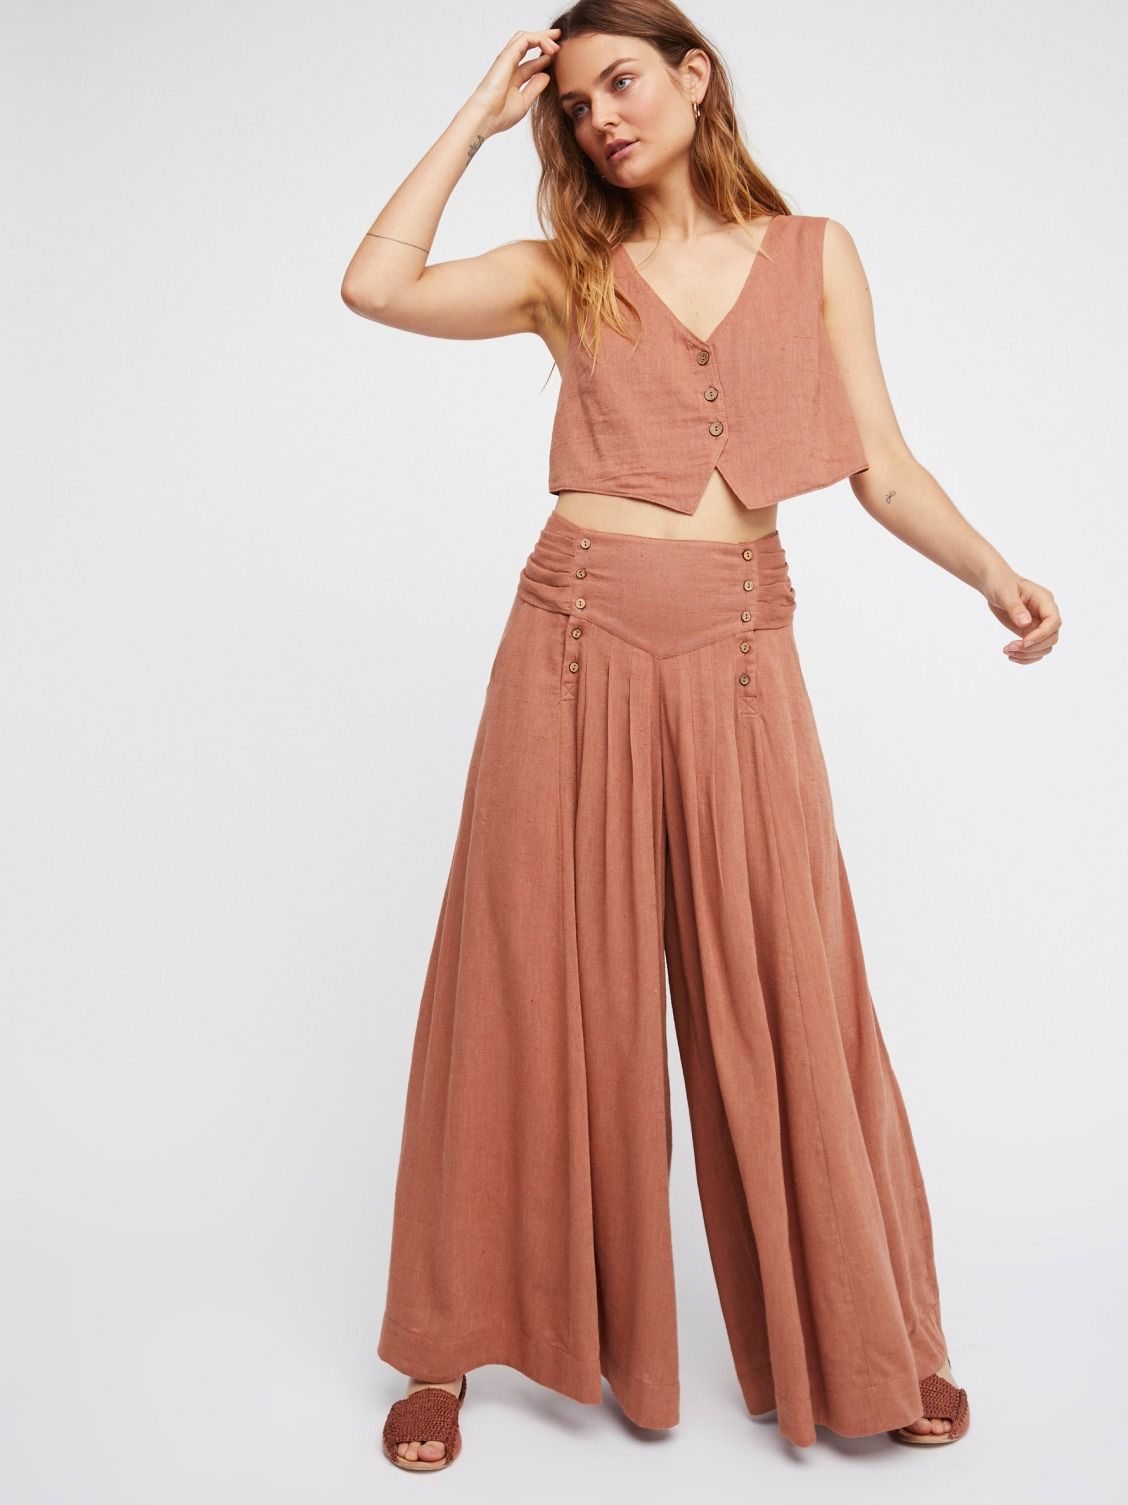 74ccdd46cf73 Endless Summer Spice Stand Out Set at Free People Clothing Boutique